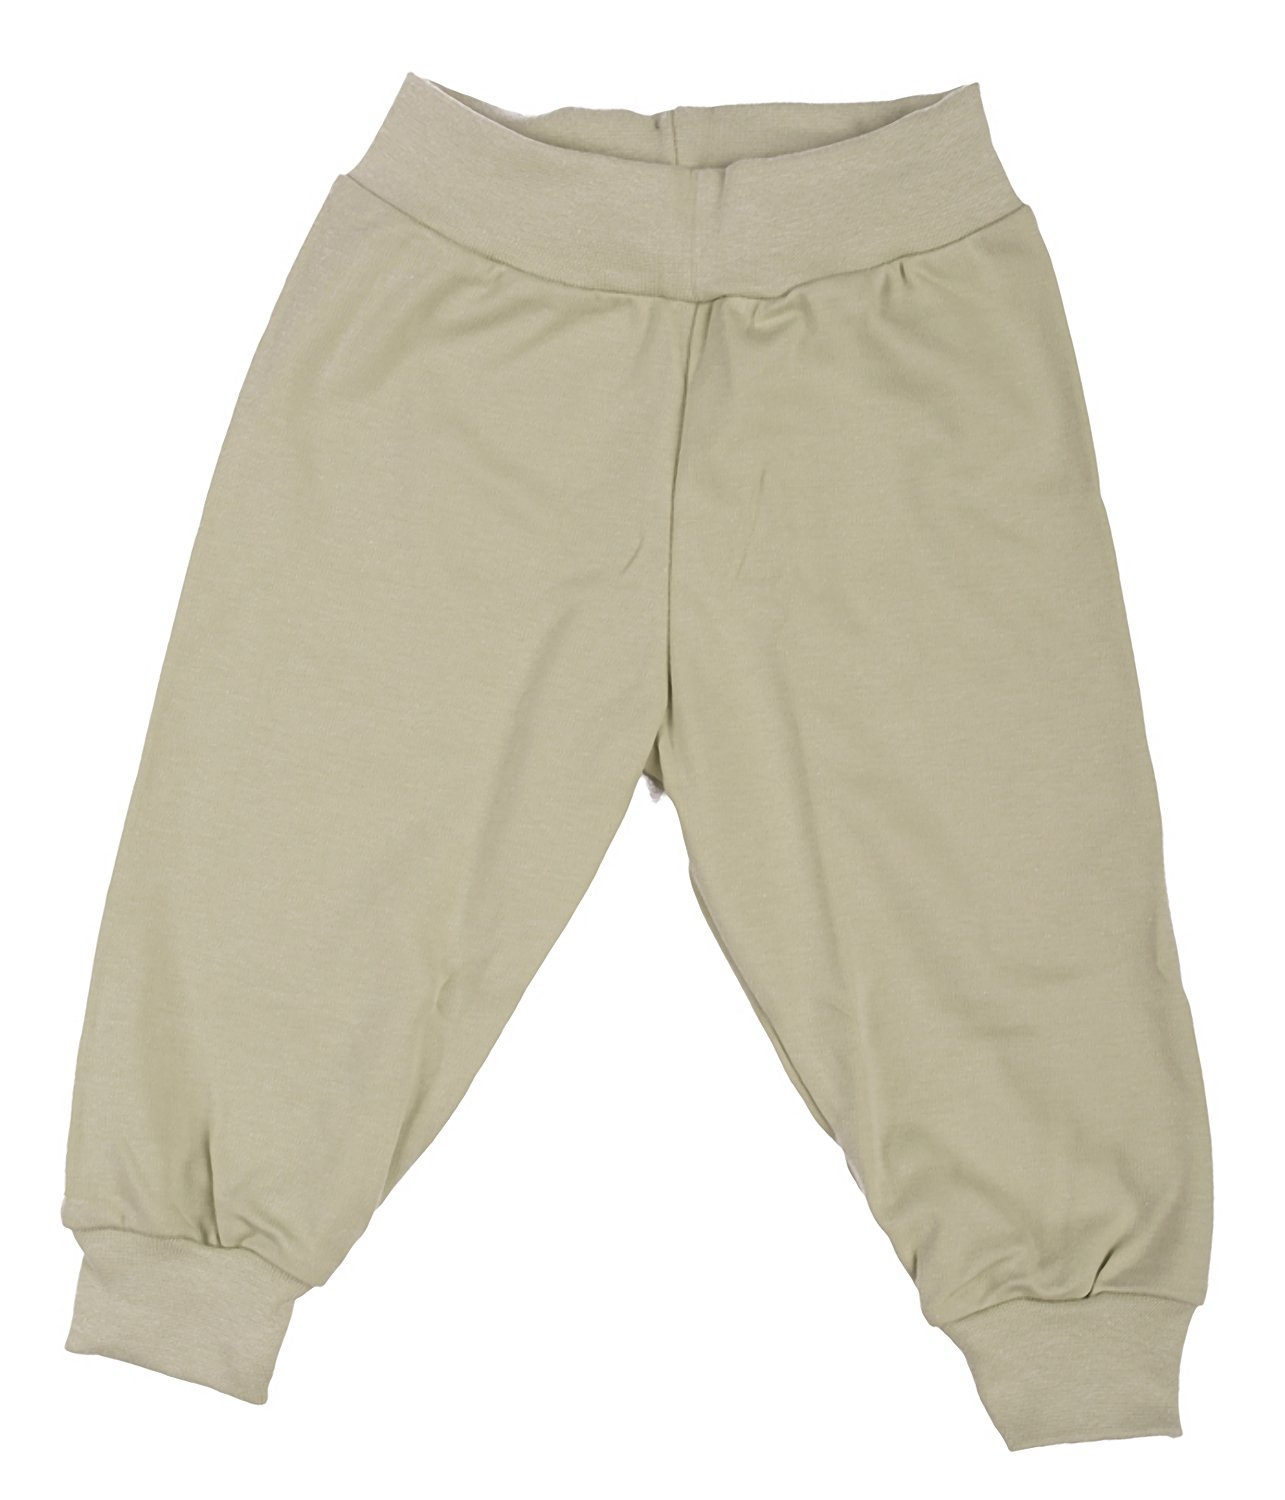 100% Cotton Unisex Baby Girl Boy Trousers With/Without Foot Wide Range of Colours and Sizes!!!